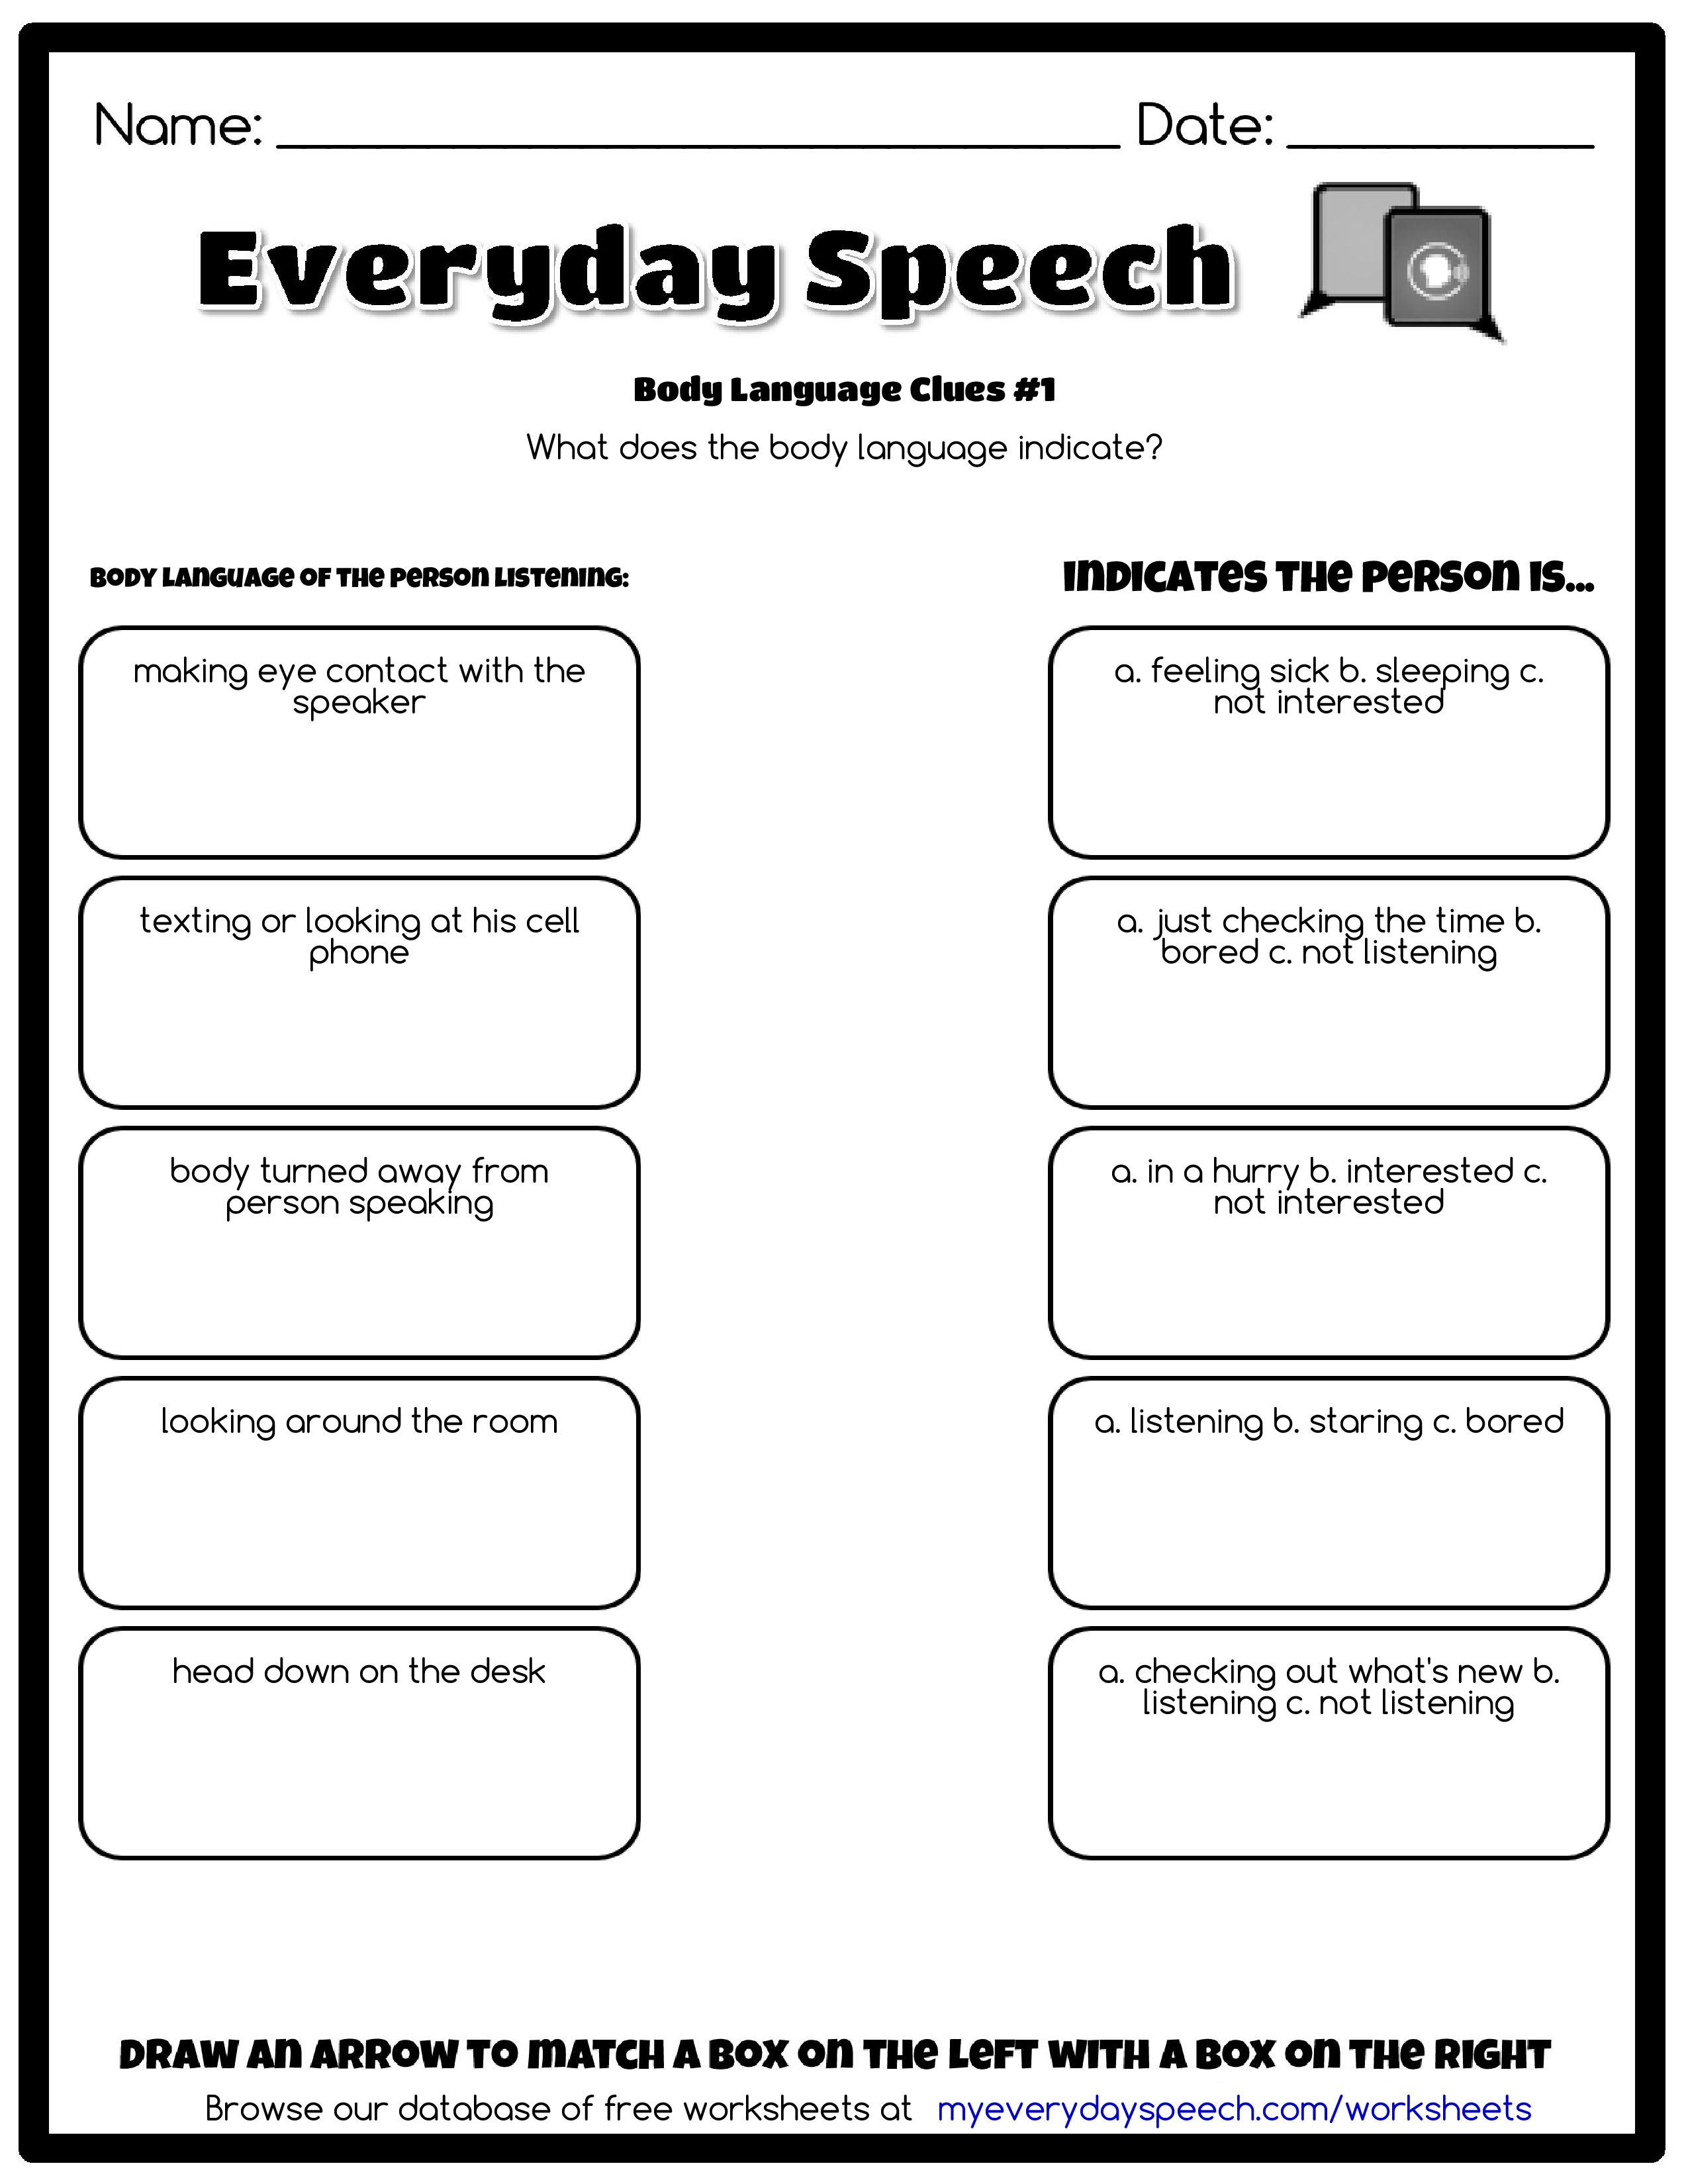 Free Math Worksheets For Patterns With Negatives Problems Math Negative Pattern Worksheets Pattern Worksheet Number Patterns Worksheets Number Patterns